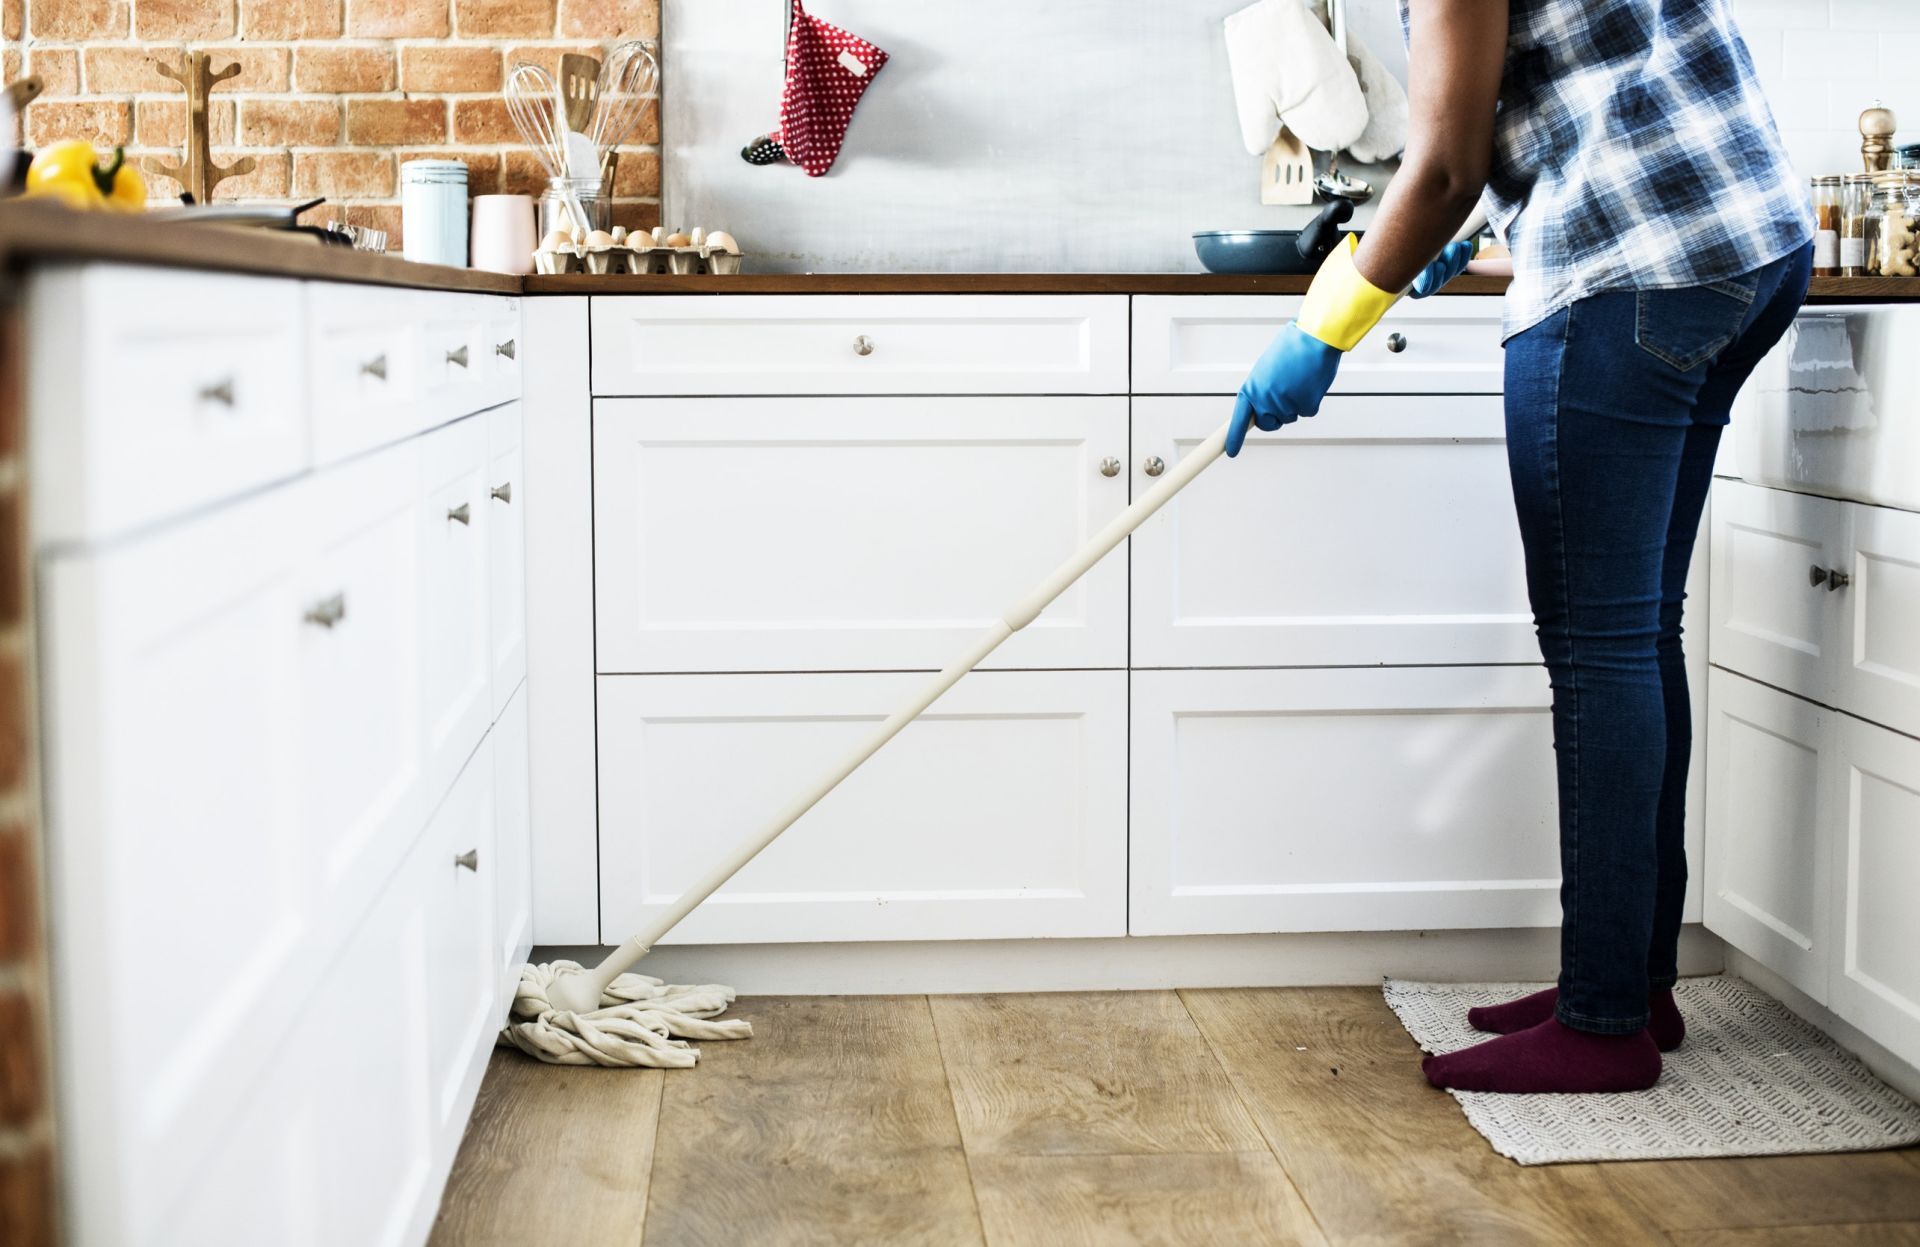 Keeping Up With a Clean Home